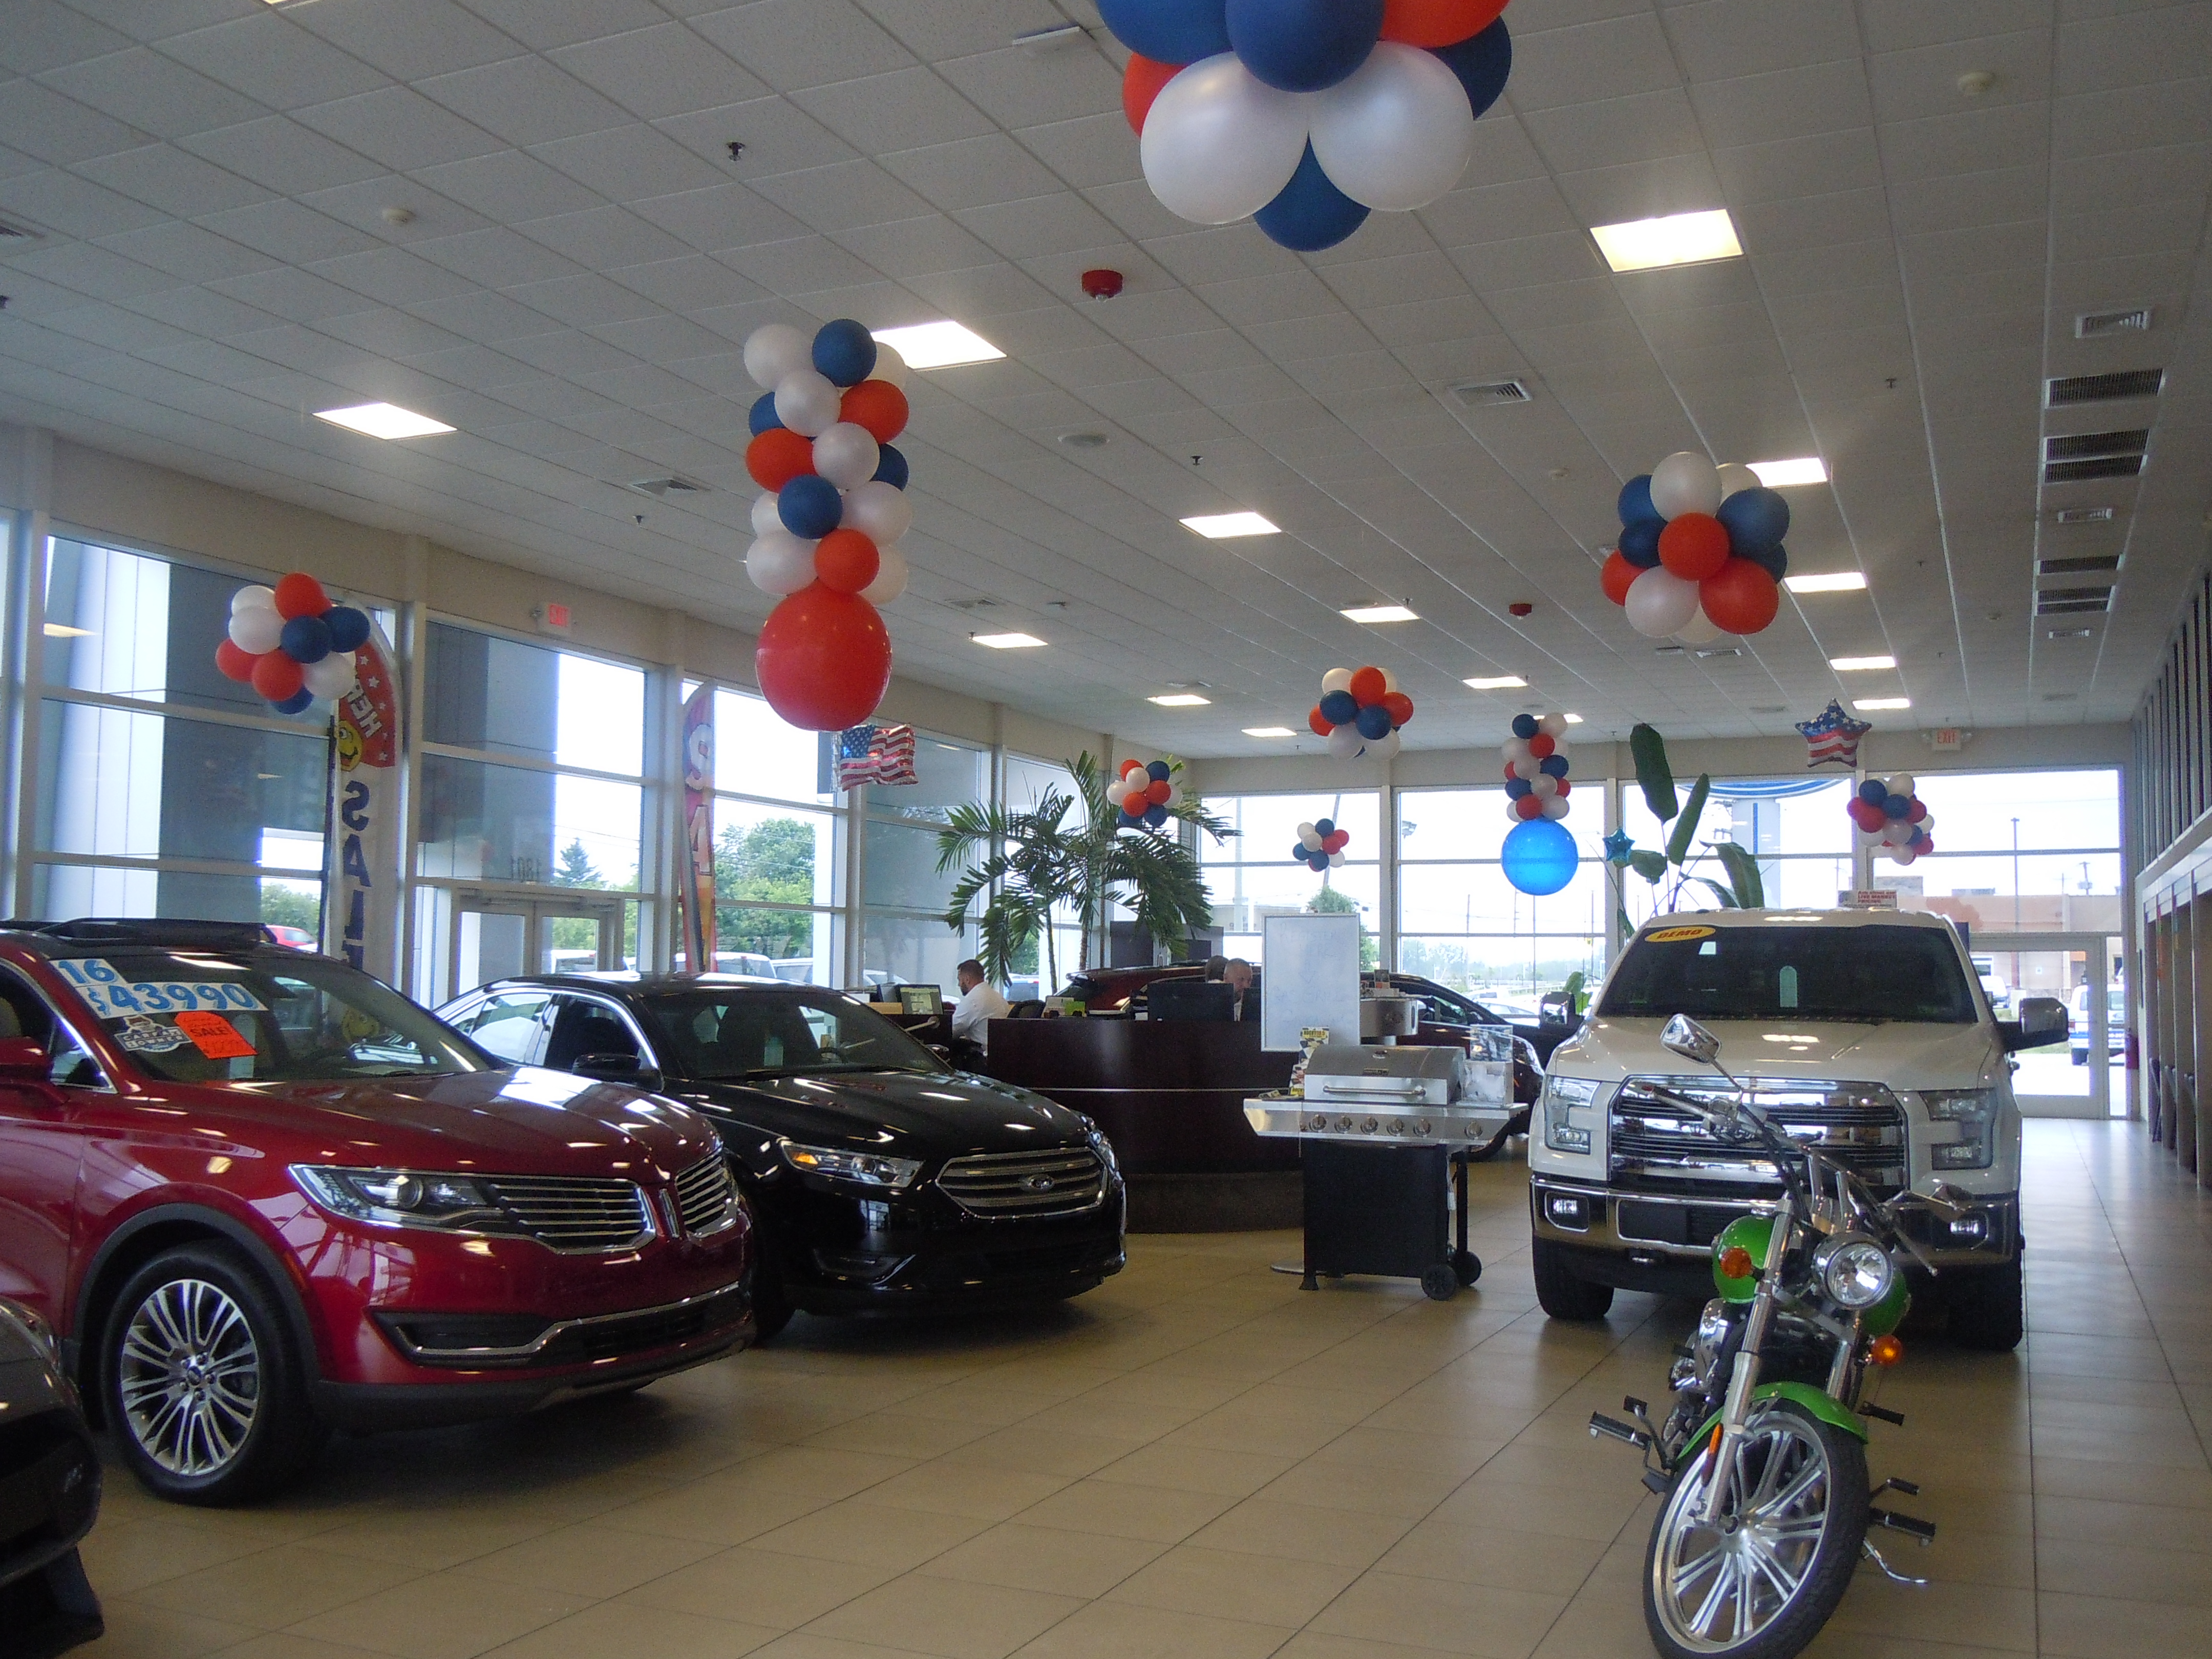 Beasley Ford York Pa >> Beasley Ford Lincoln at 1801 Whiteford Road, York, PA on Fave